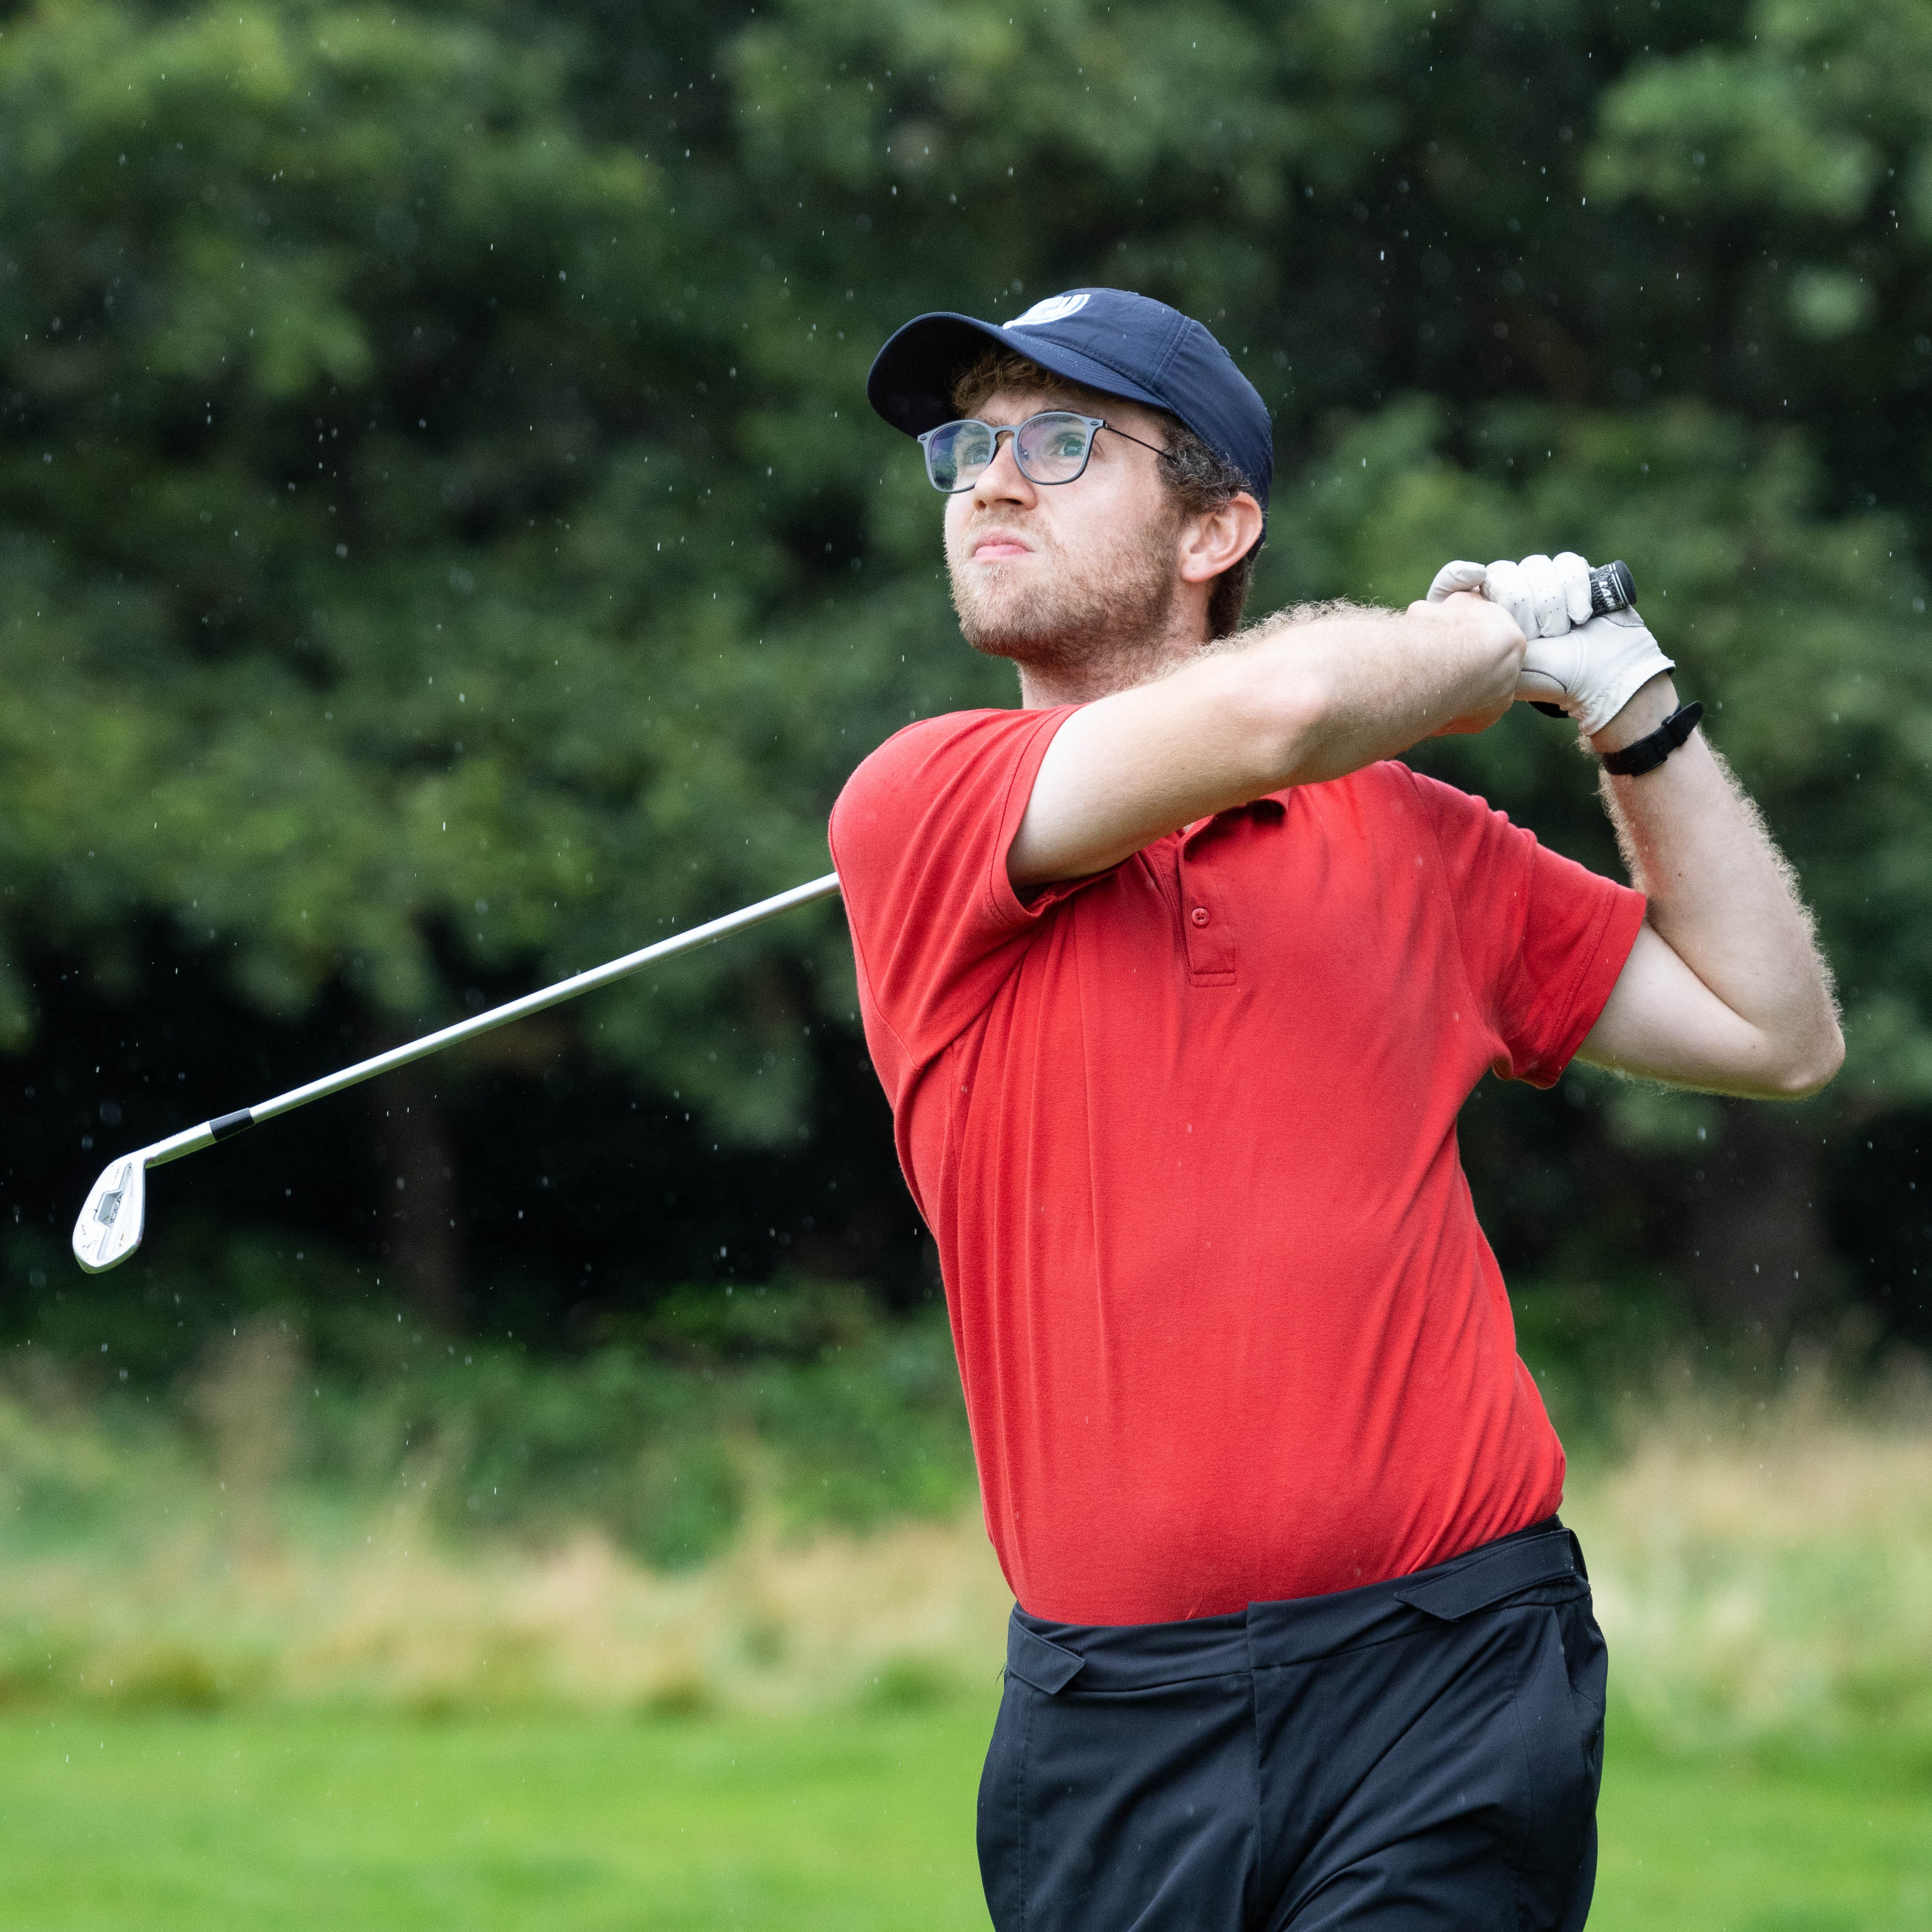 James Taylor with another assured long iron off the tee